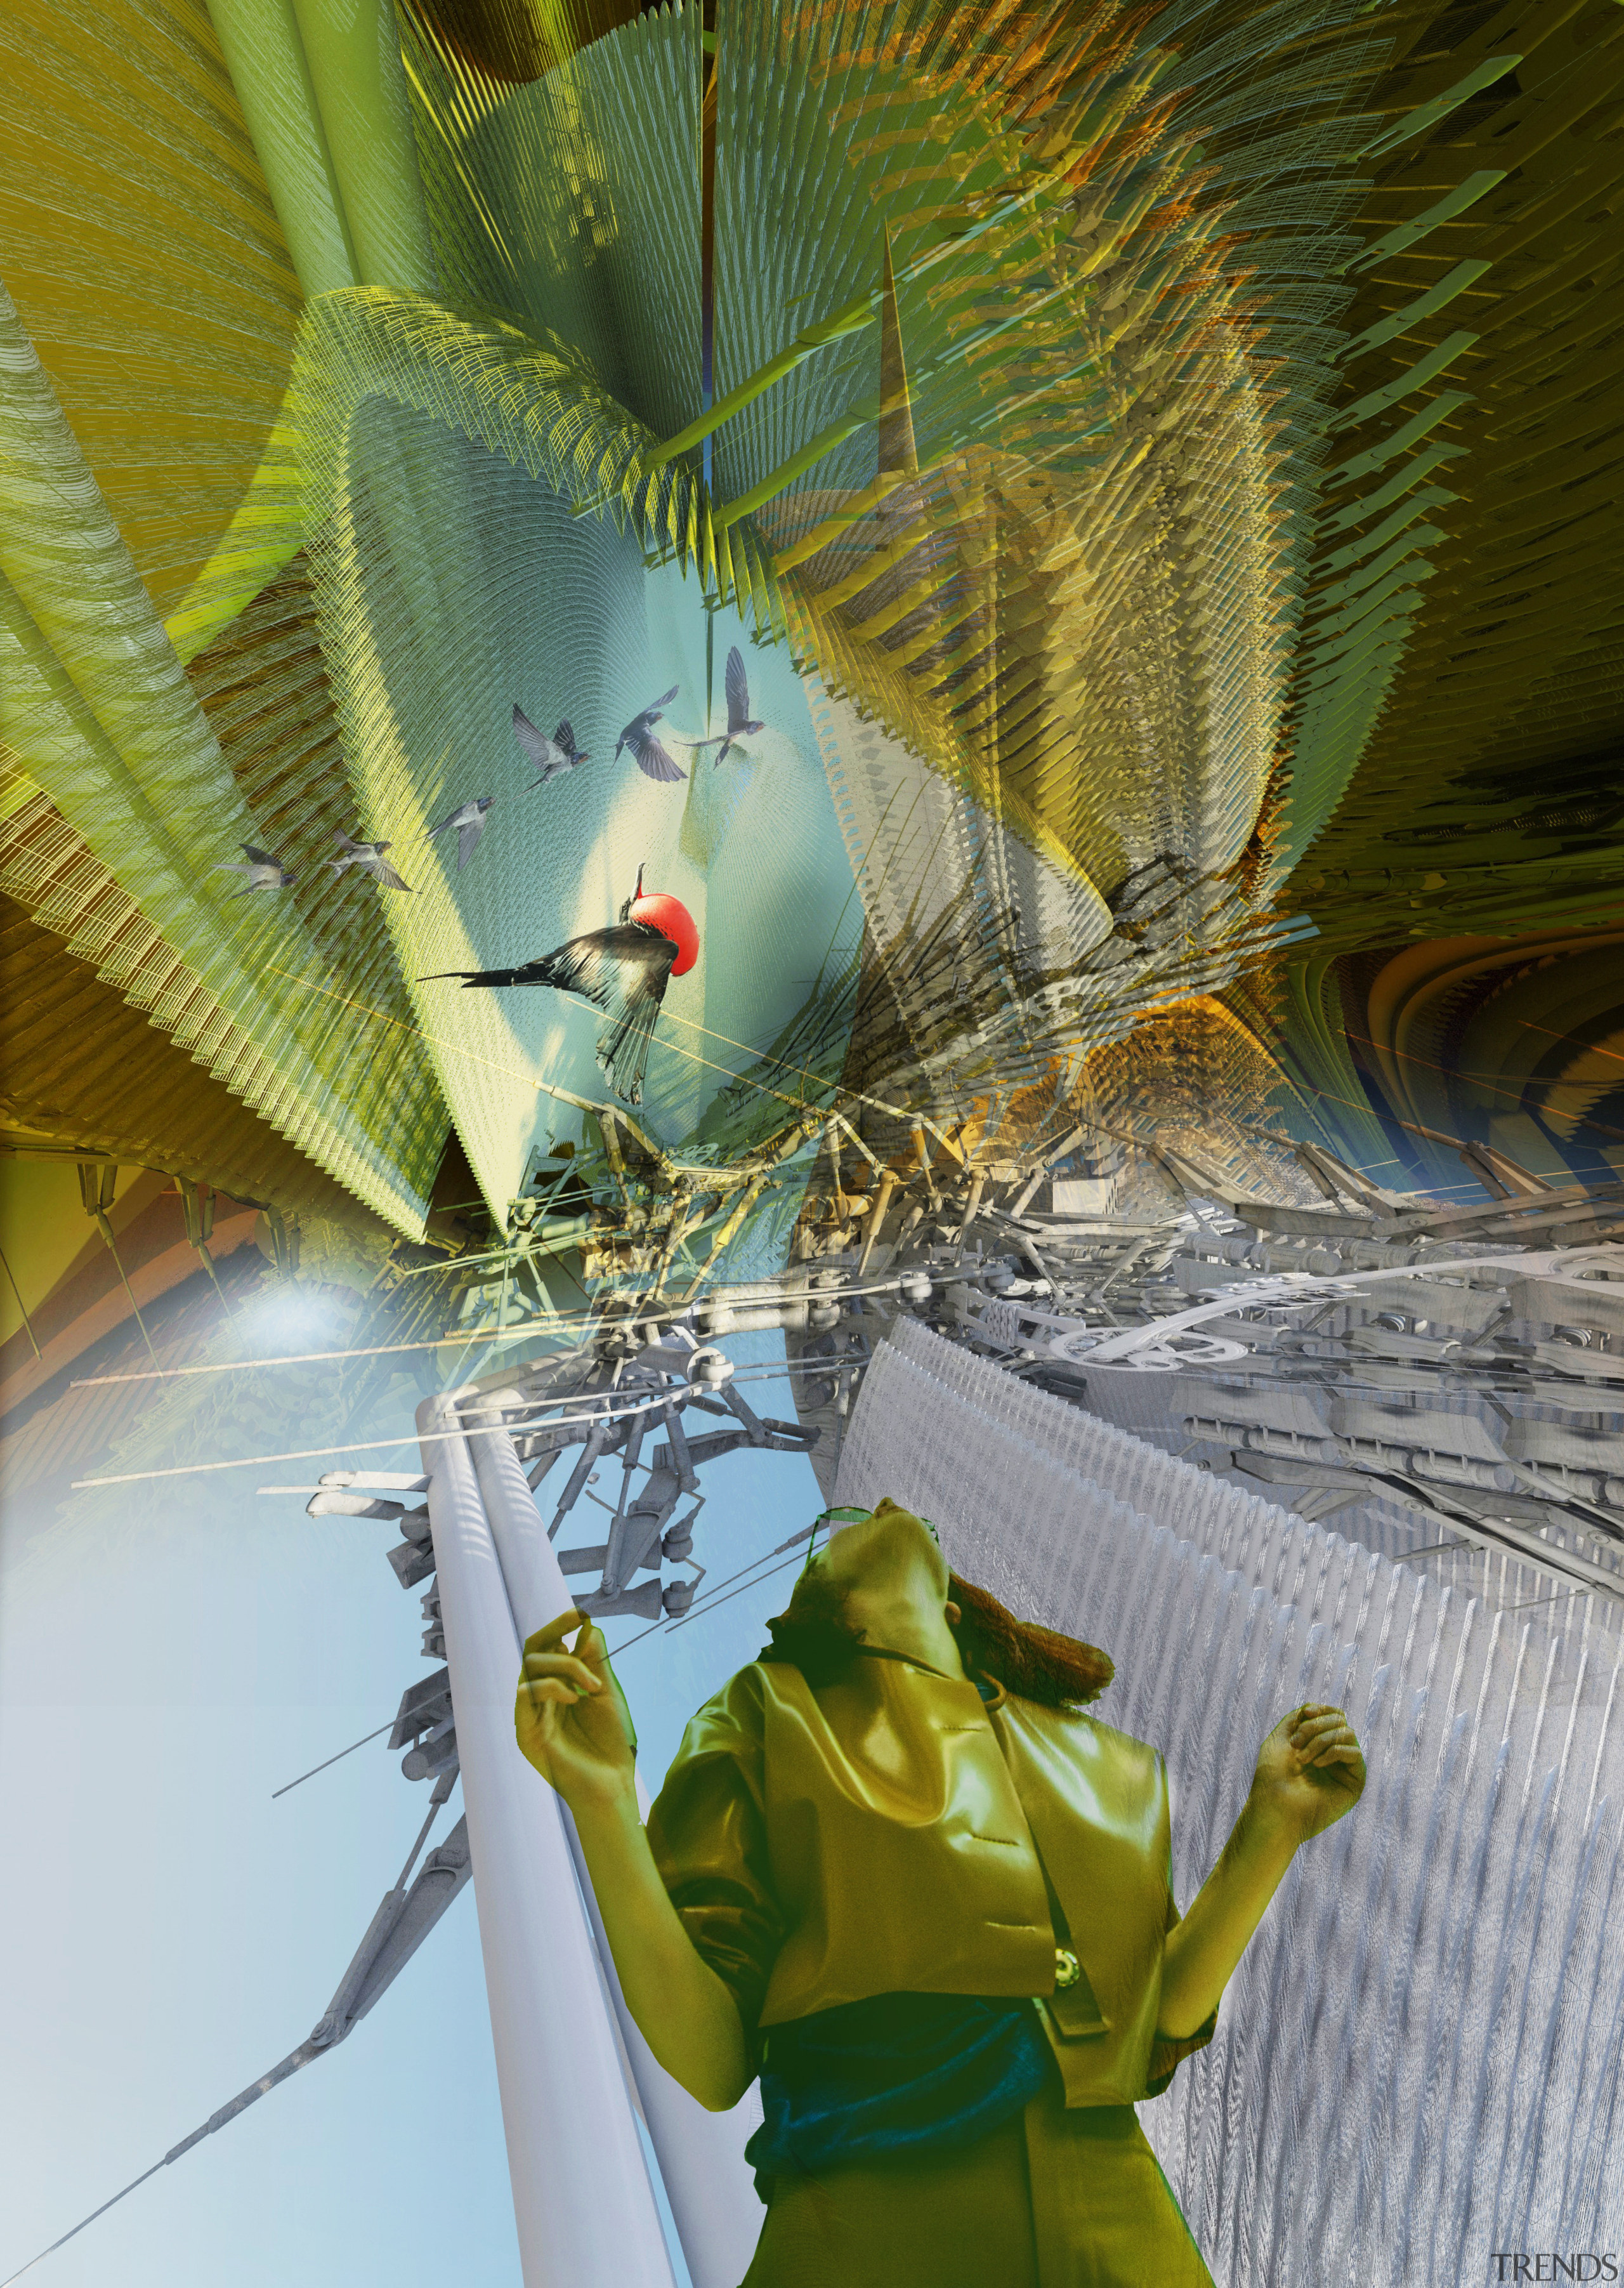 Piezoelectric Loom Aviary will offer an up close